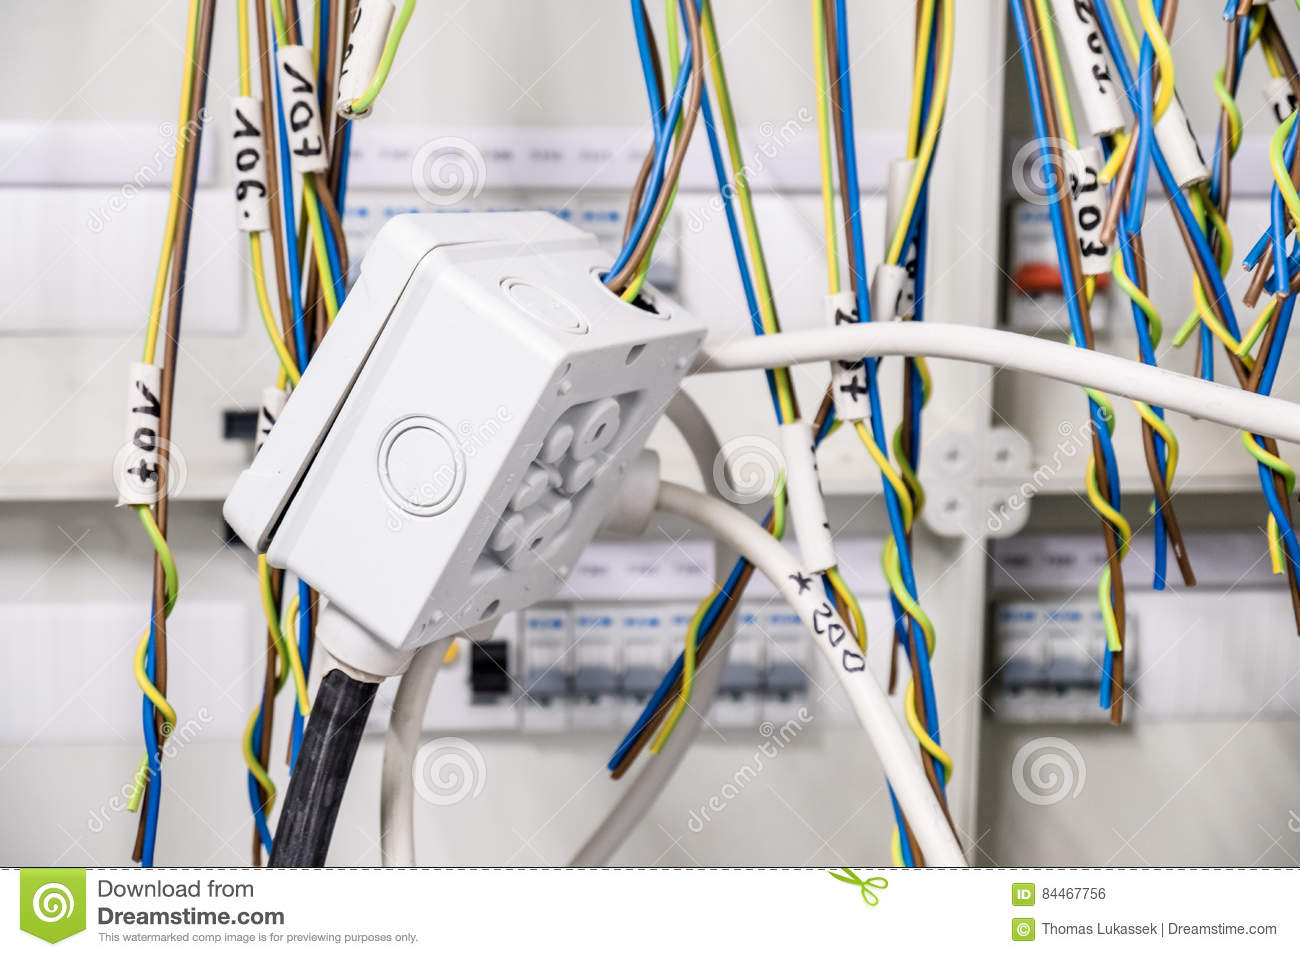 Provisional Electrical Arrangement In Panel Stock Photo - Image of ...